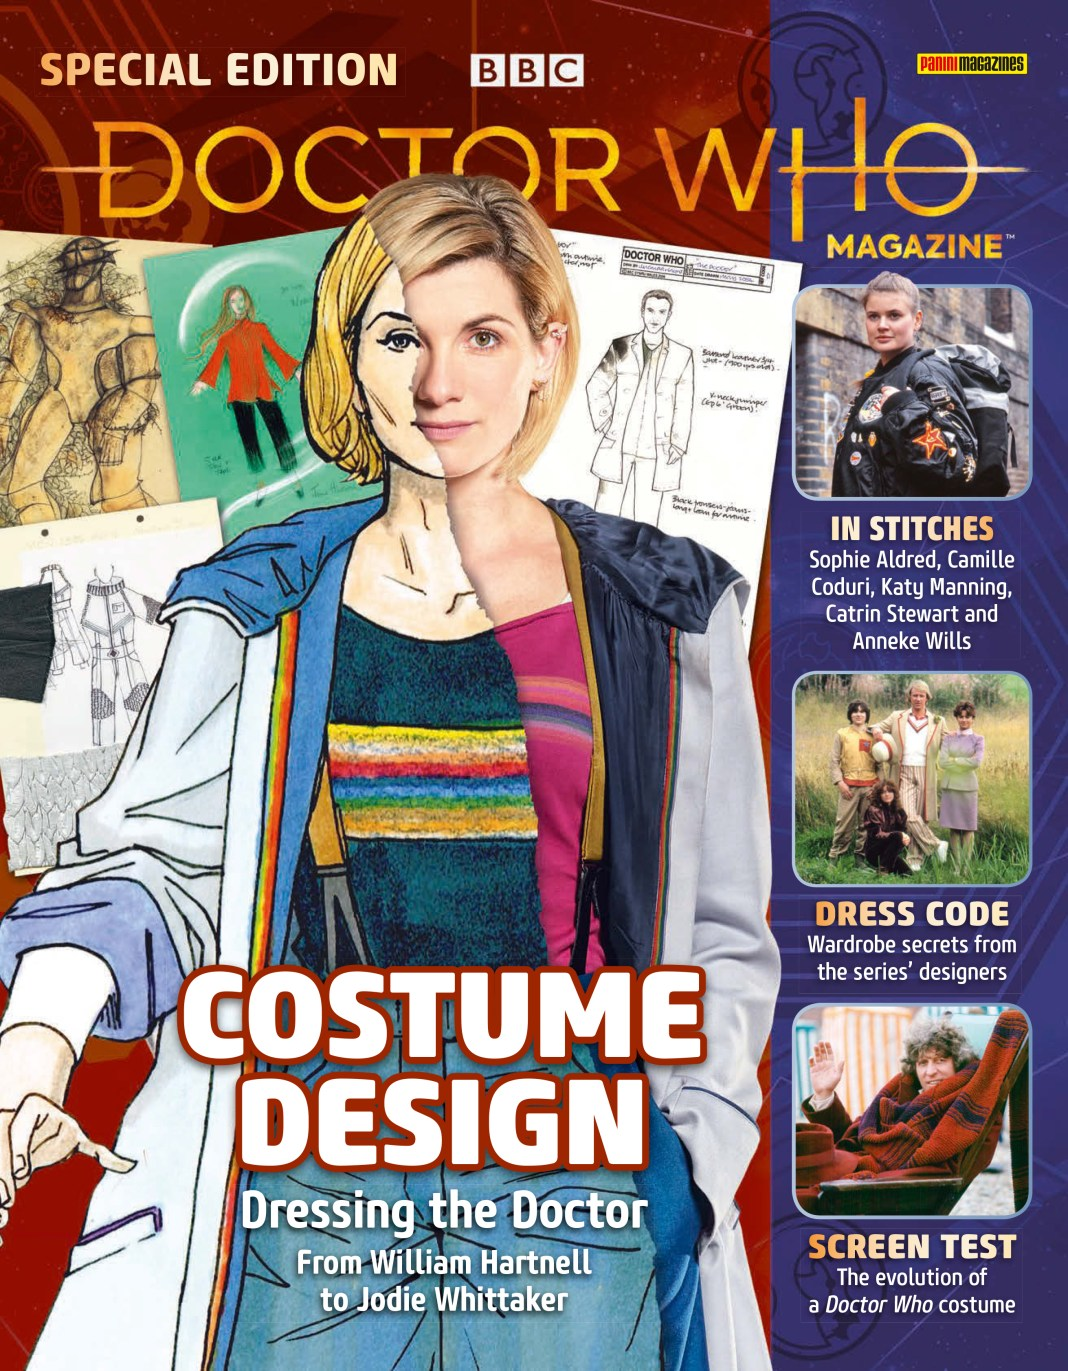 Doctor Who Magazine - Special Edition - Costume Design (Cover)